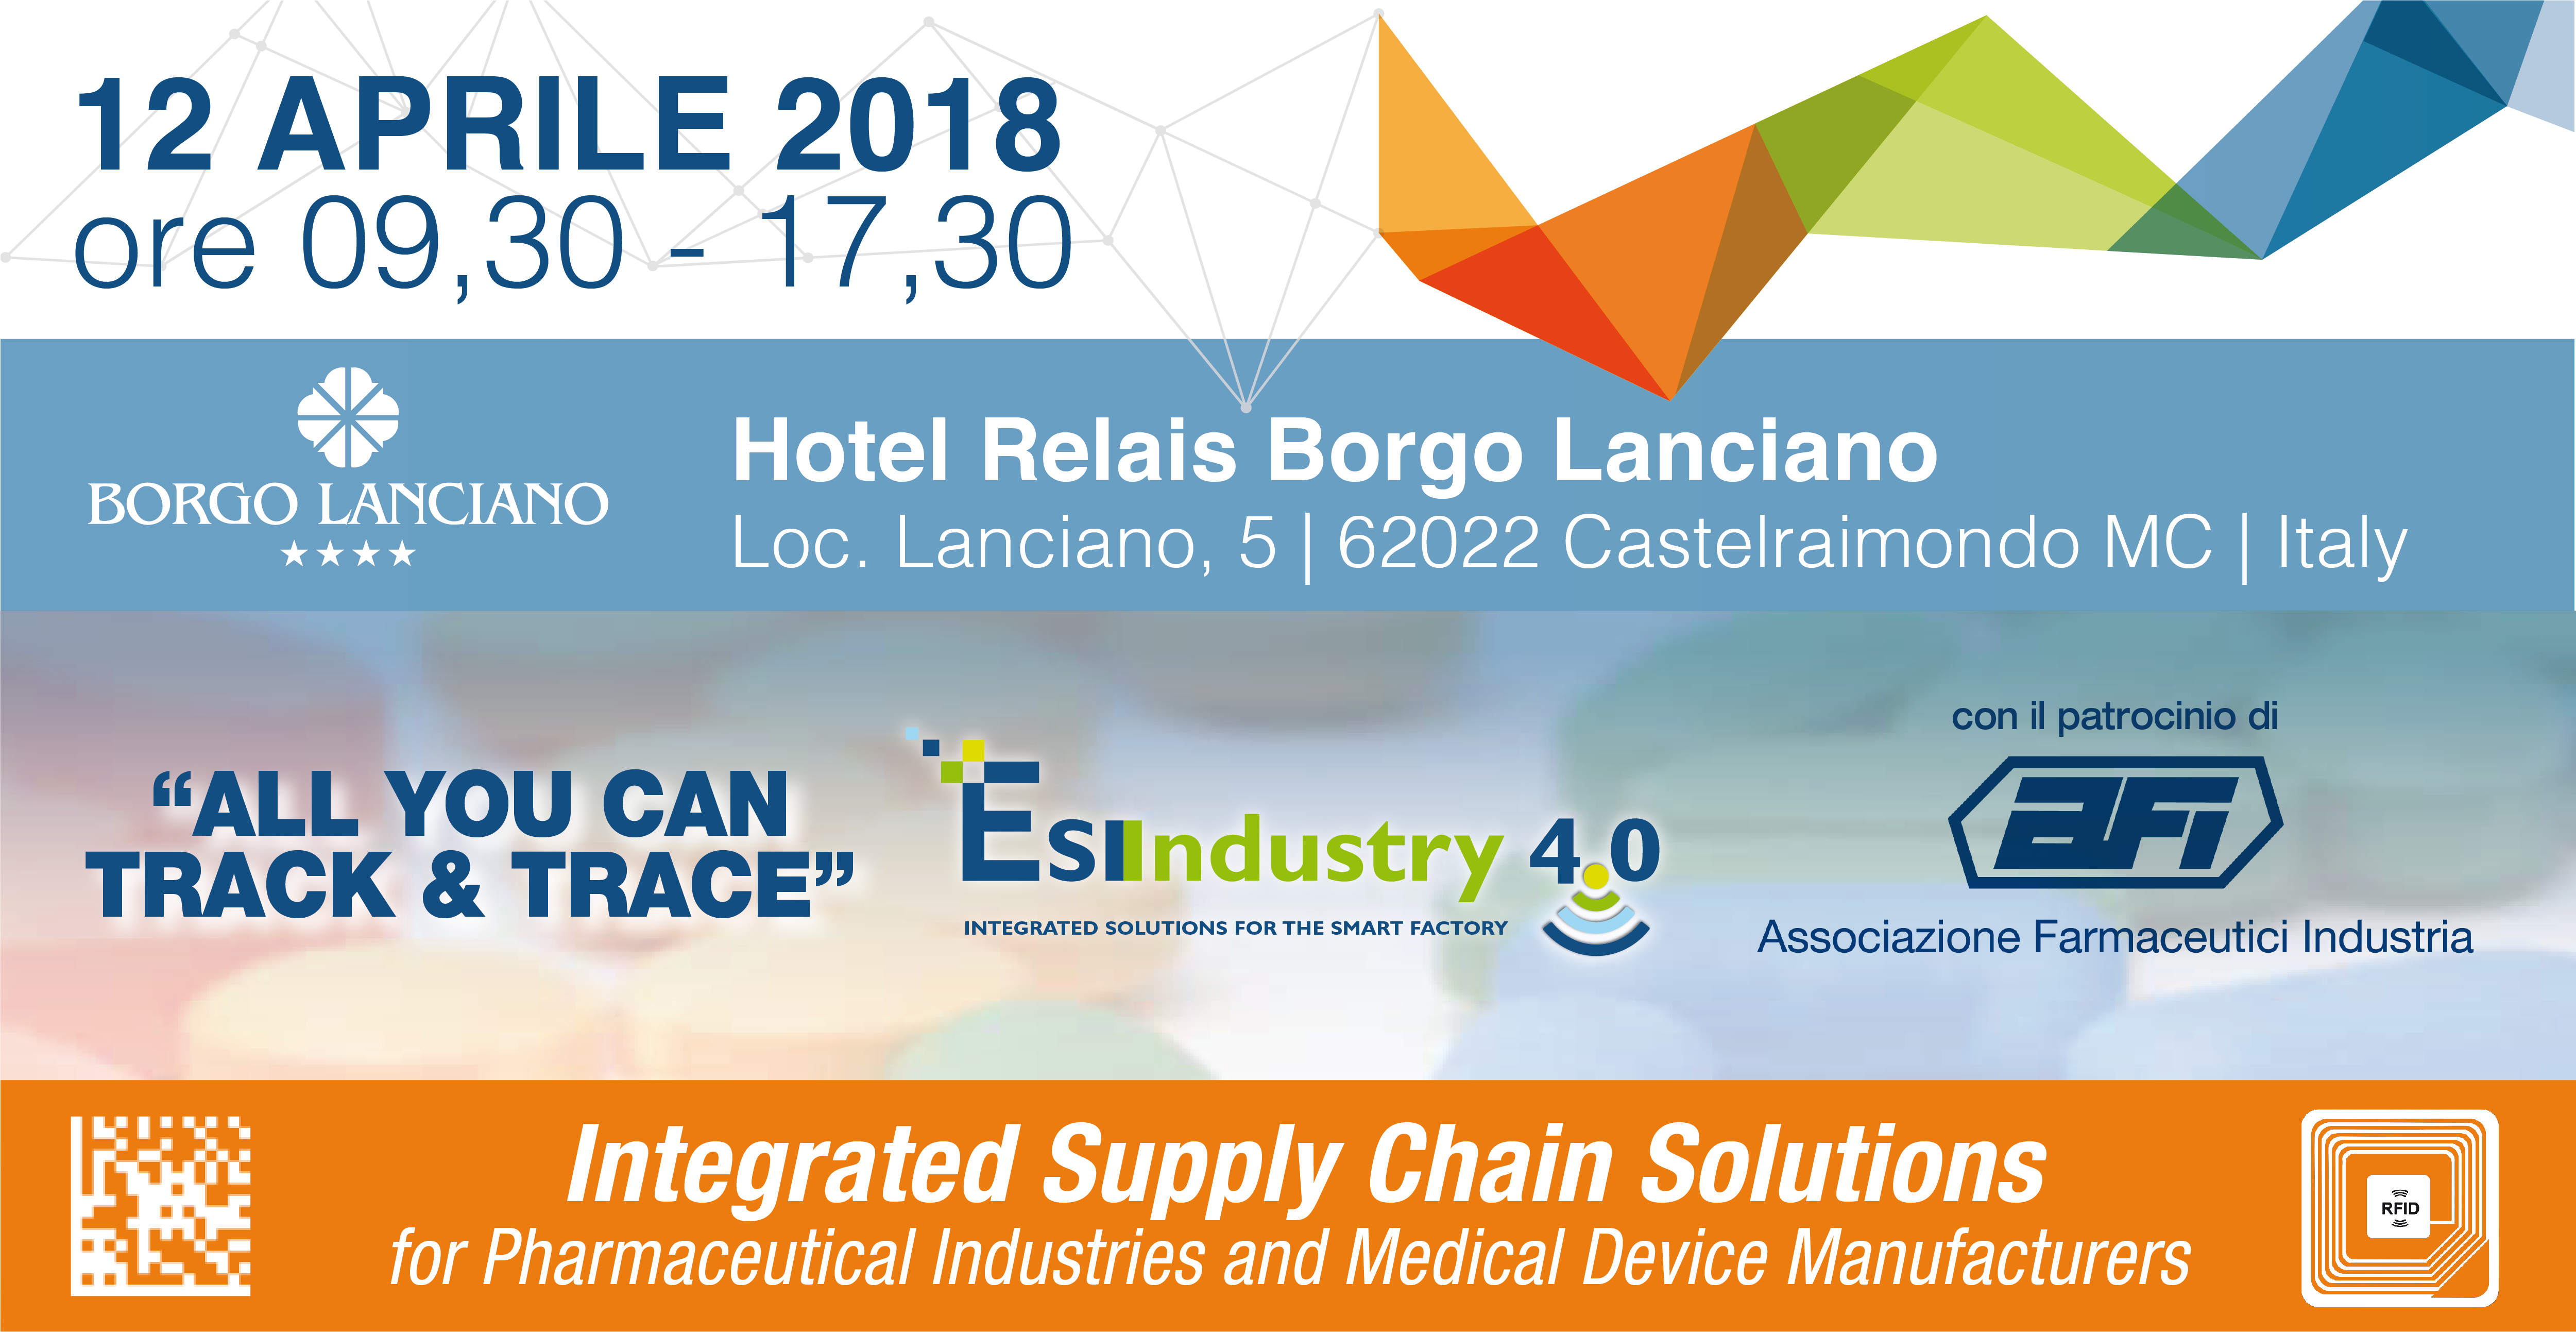 All You Can Track And Trace - 2018 | ESINDUSTRY 4.0 | Integrated Supply Chain Solutions for Pharmaceutical Industries and Medical Device Manufacturers 01